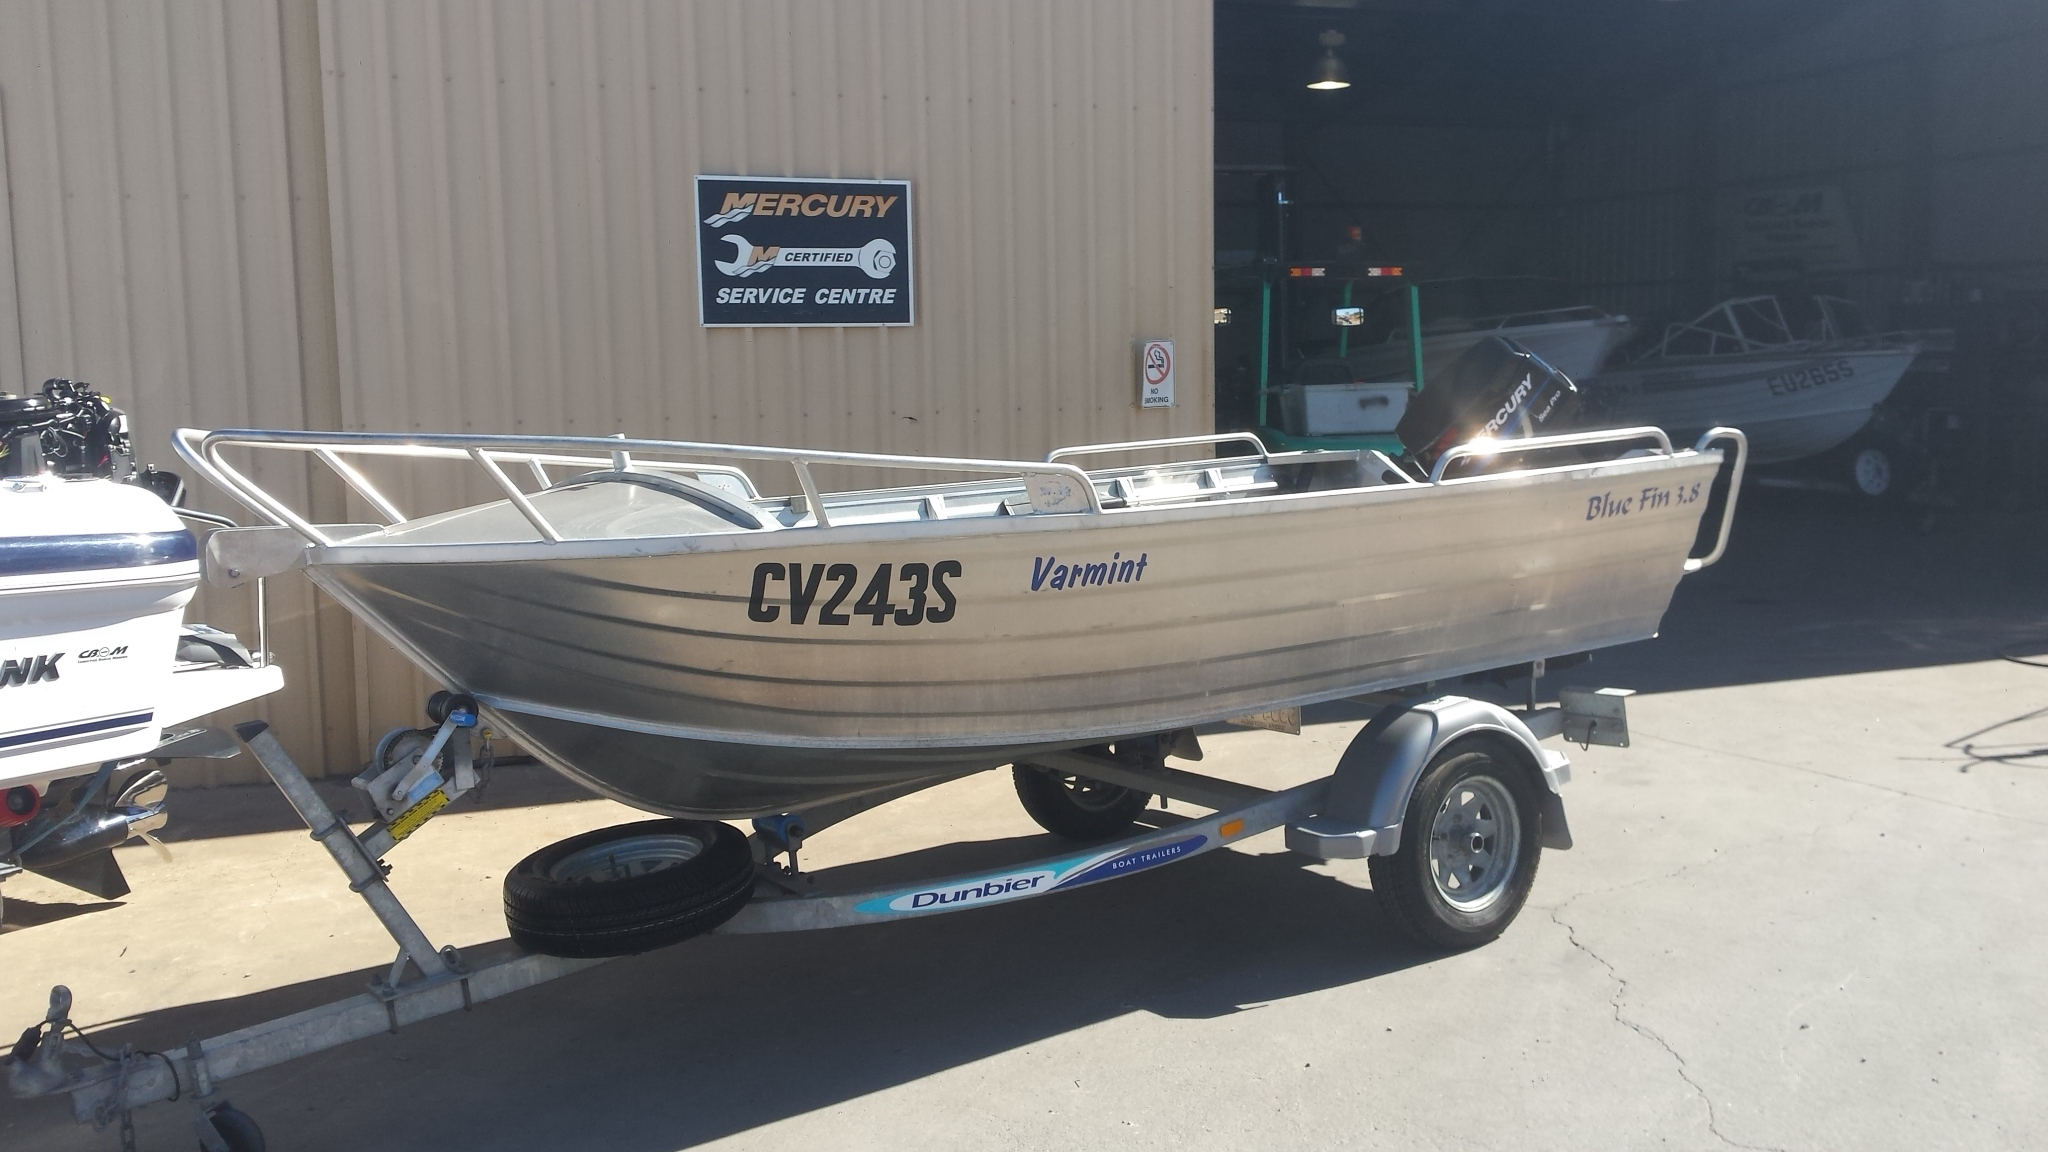 2012 Bluefin 380 Varmint Dinghy